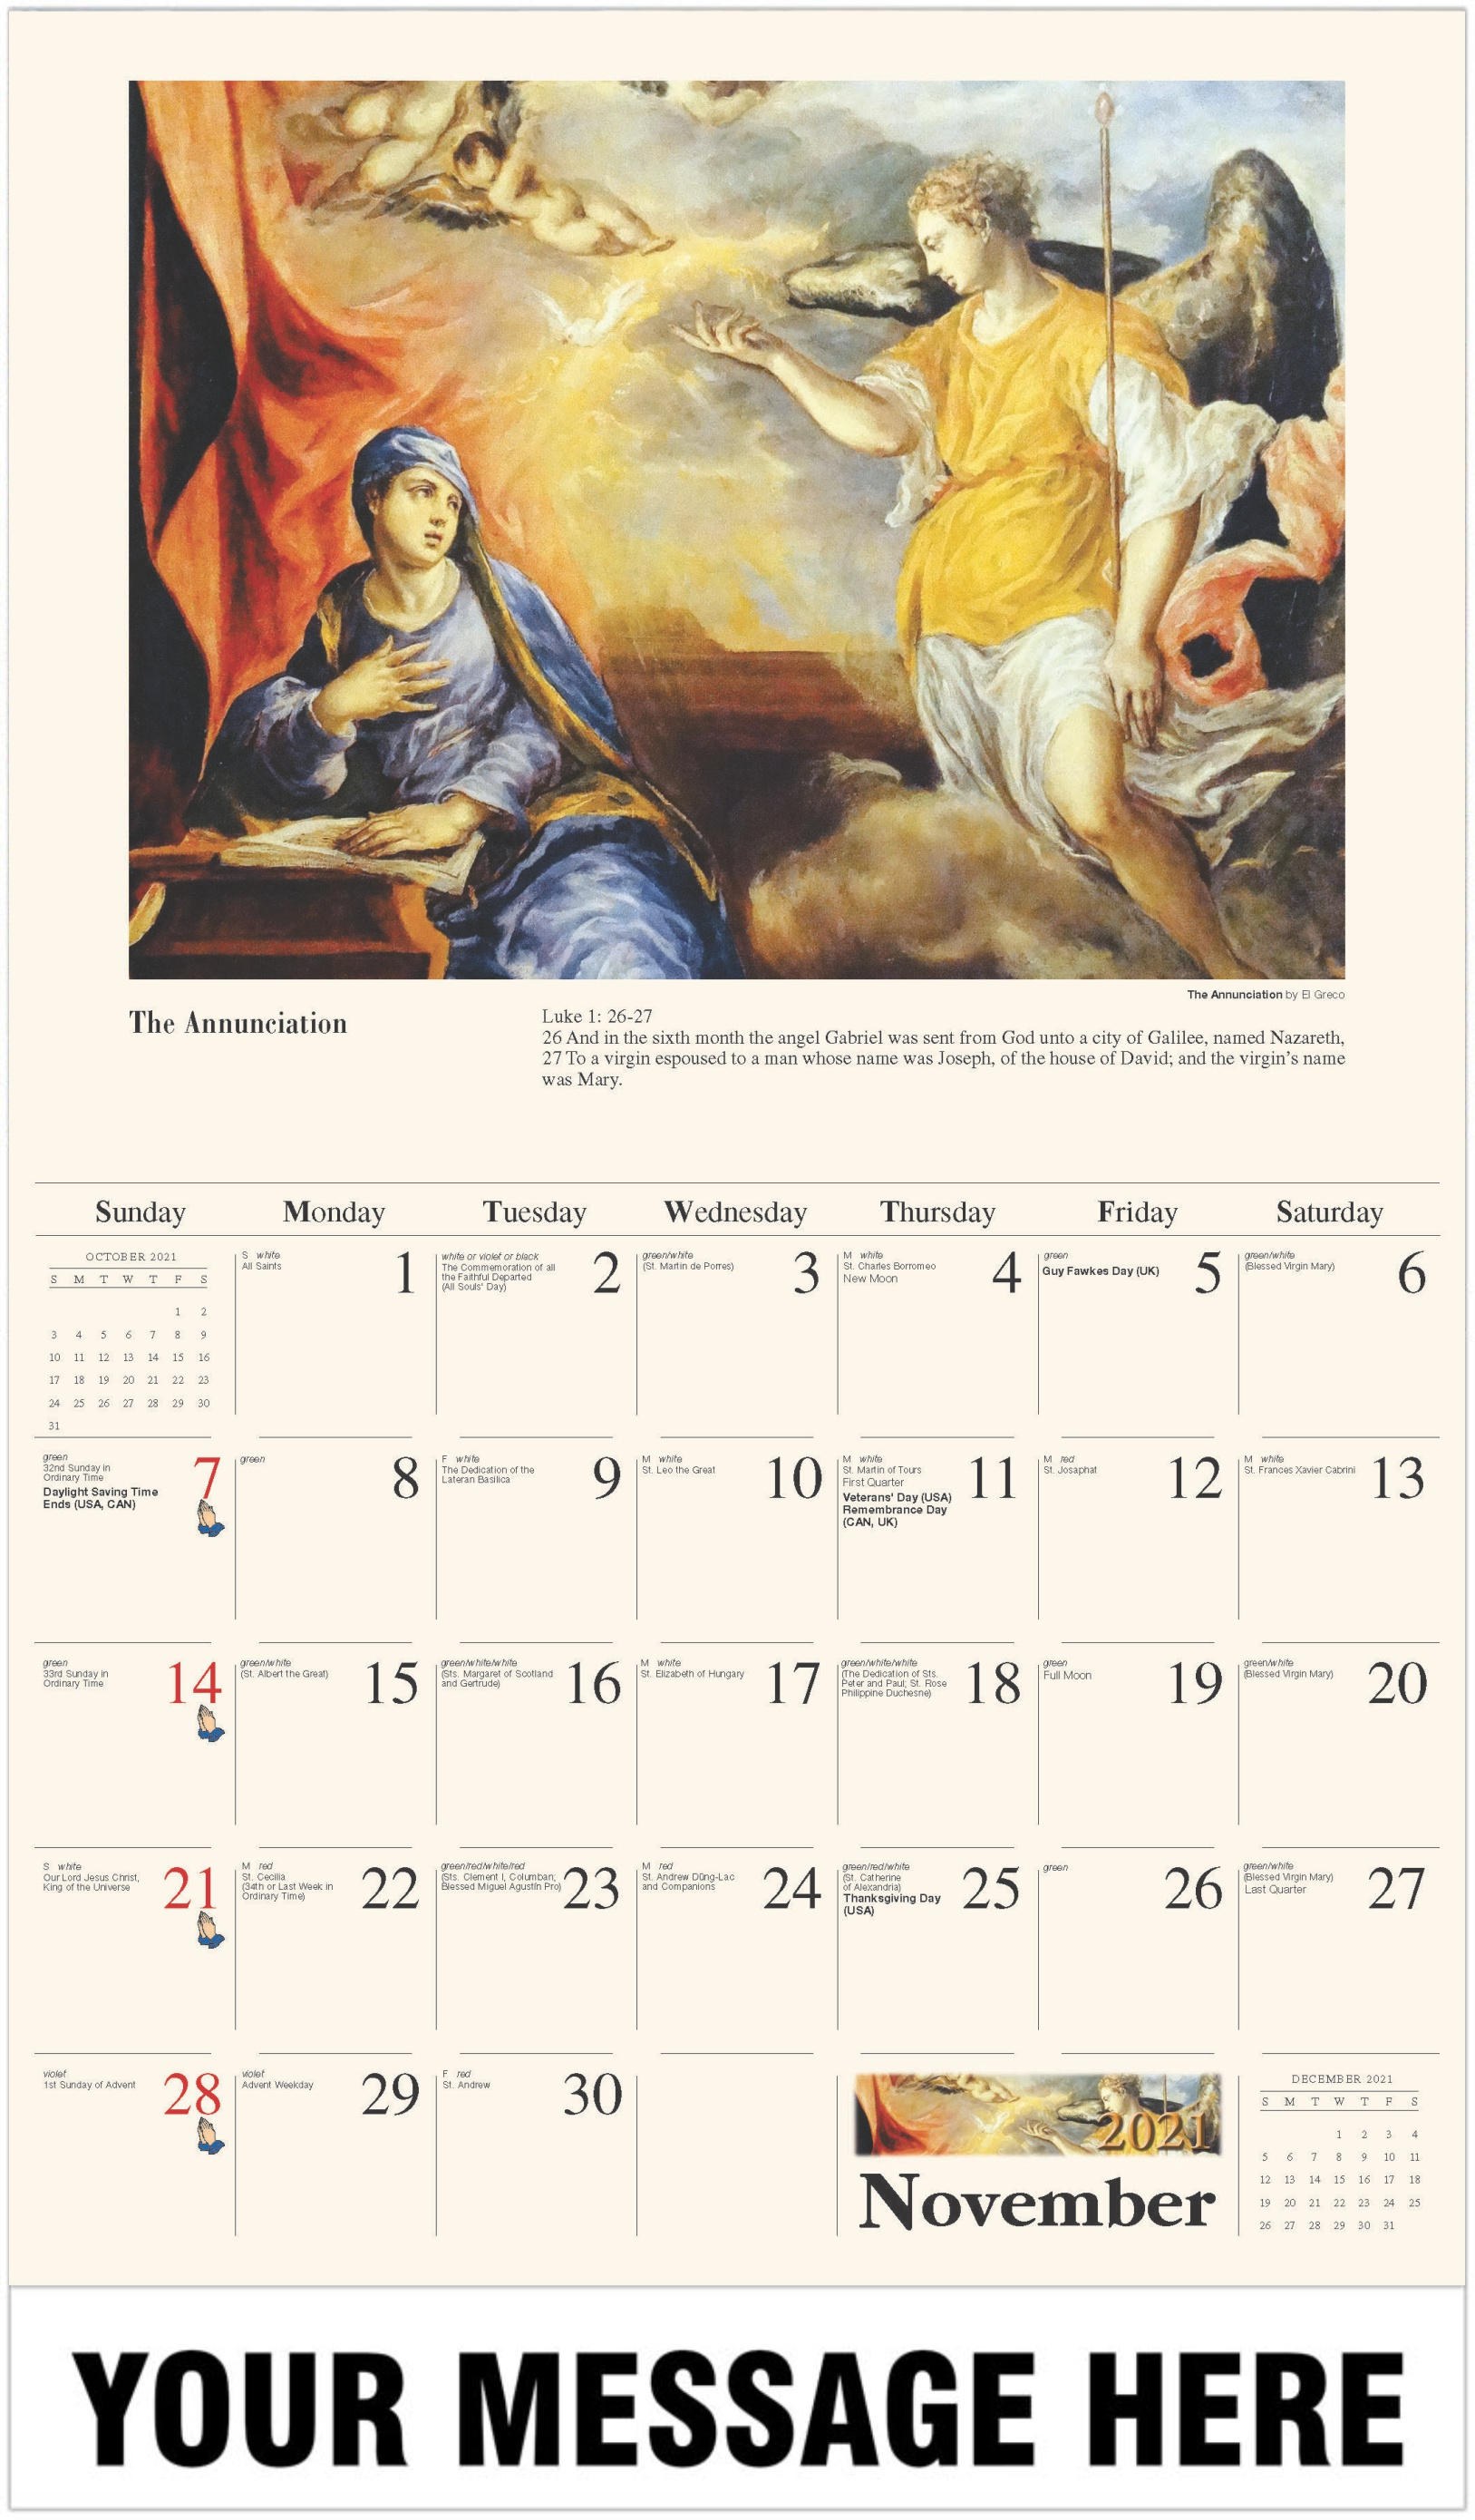 The Annunciation - November - Catholic Inspiration 2021 Promotional Calendar